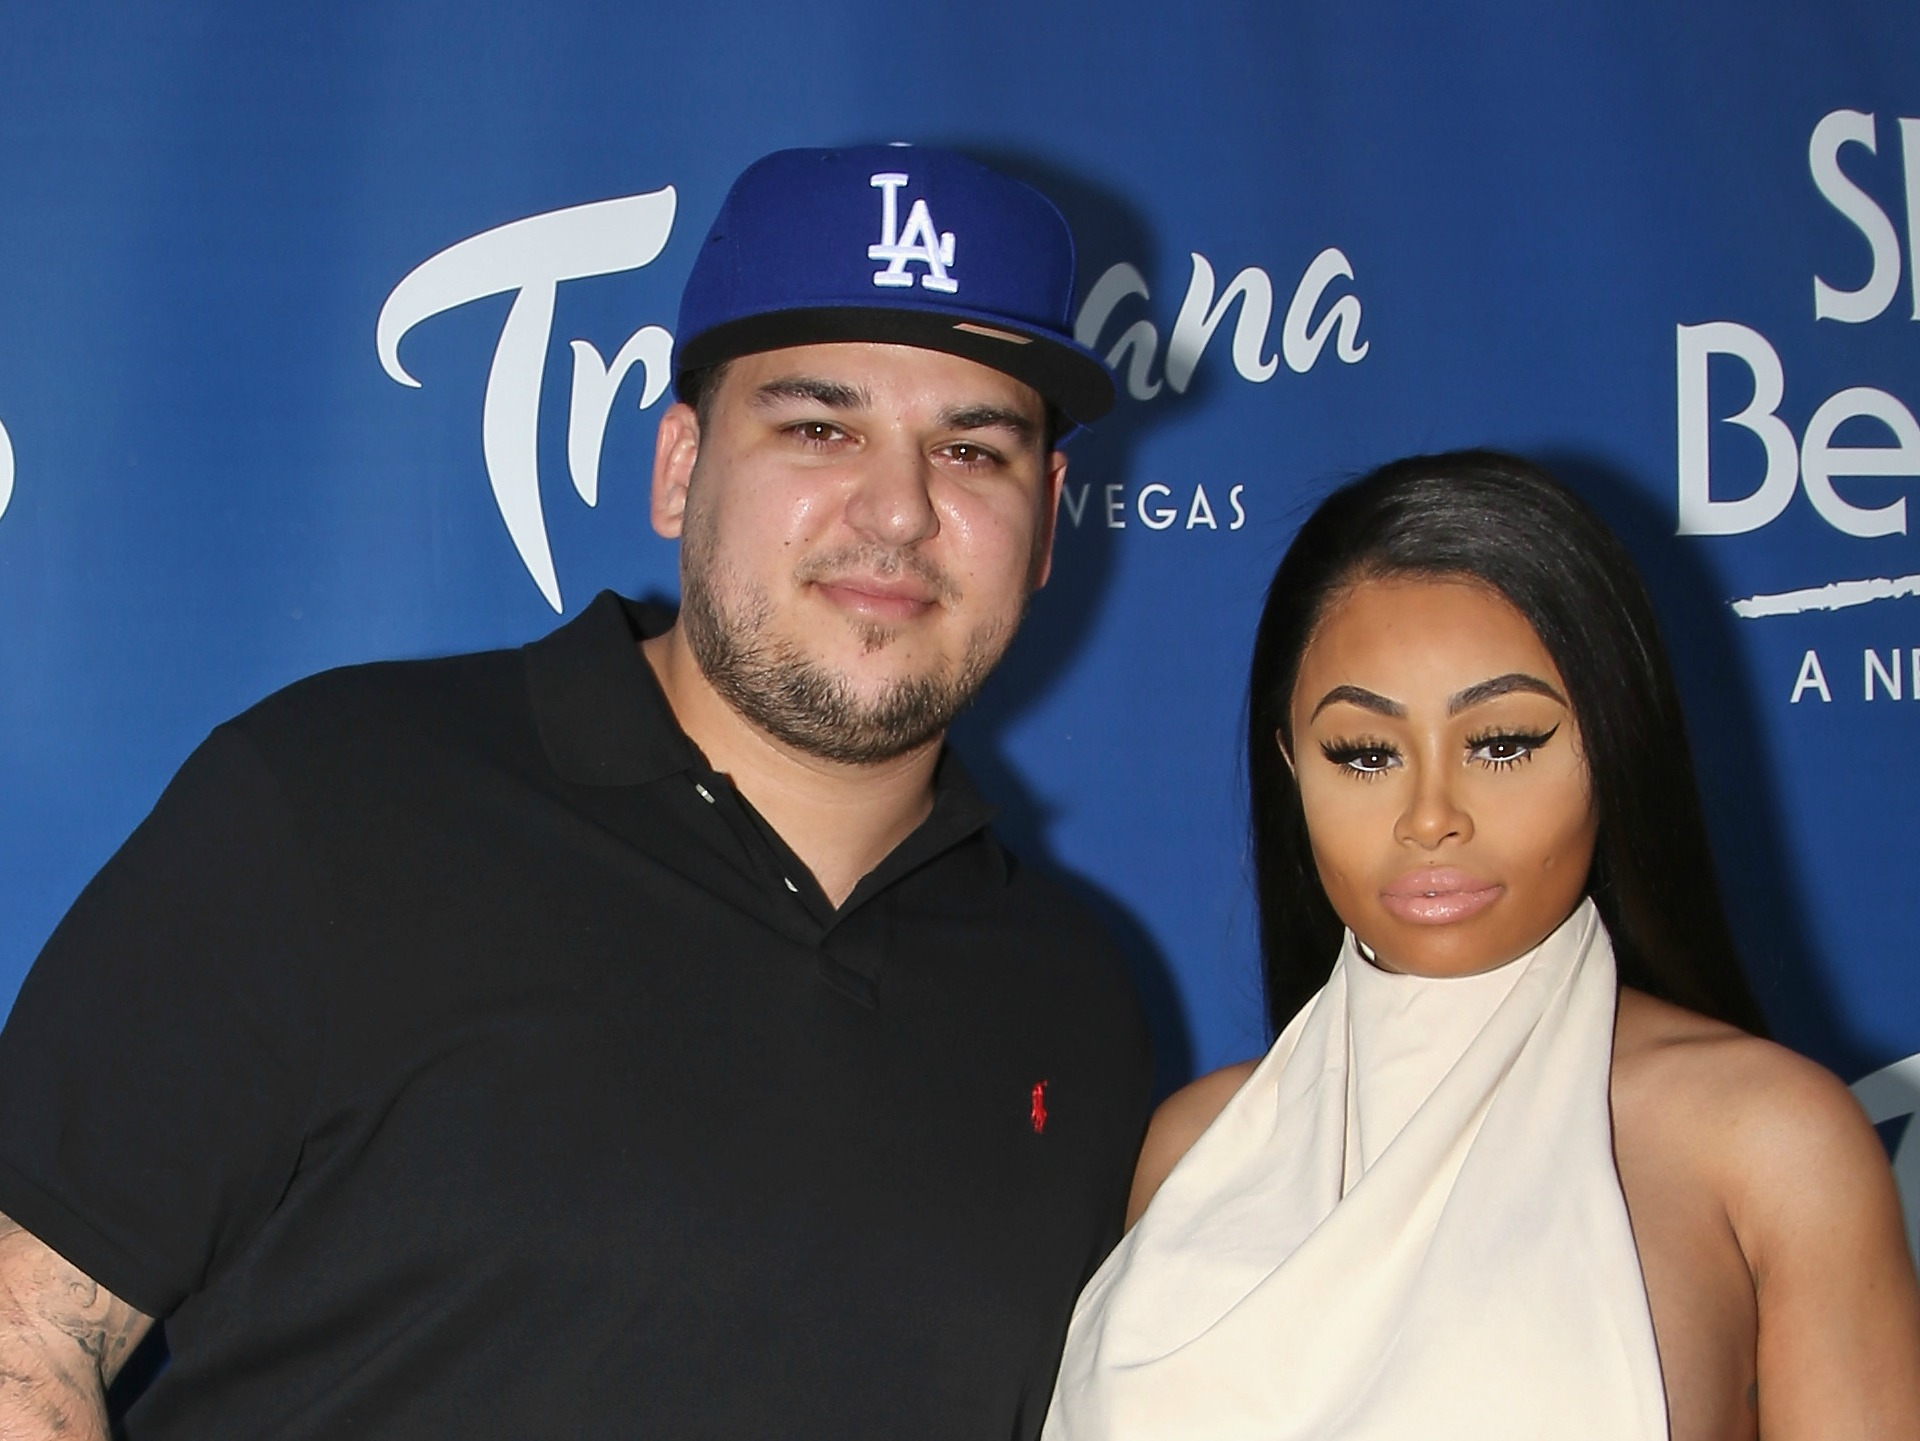 Rob Kardashian leaked Blac Chyna's nudes, she claims he beat her